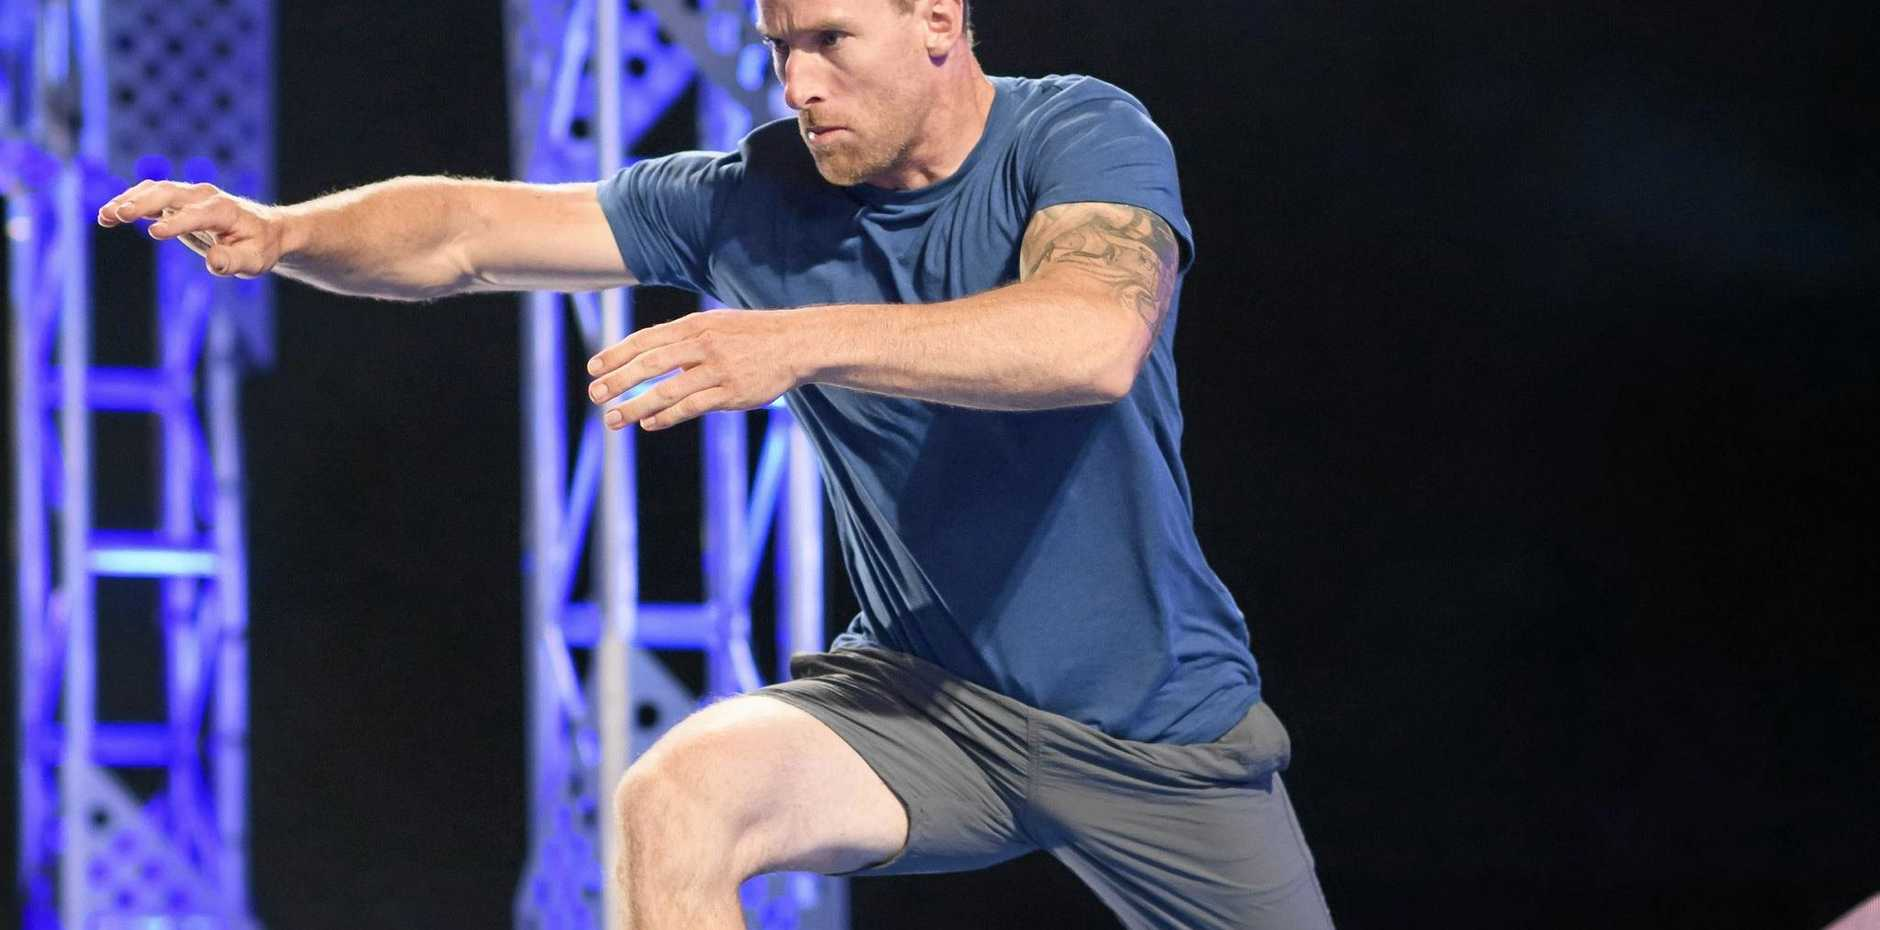 Michael Nass appears on Ninja Warrior. He is from Toowoomba.